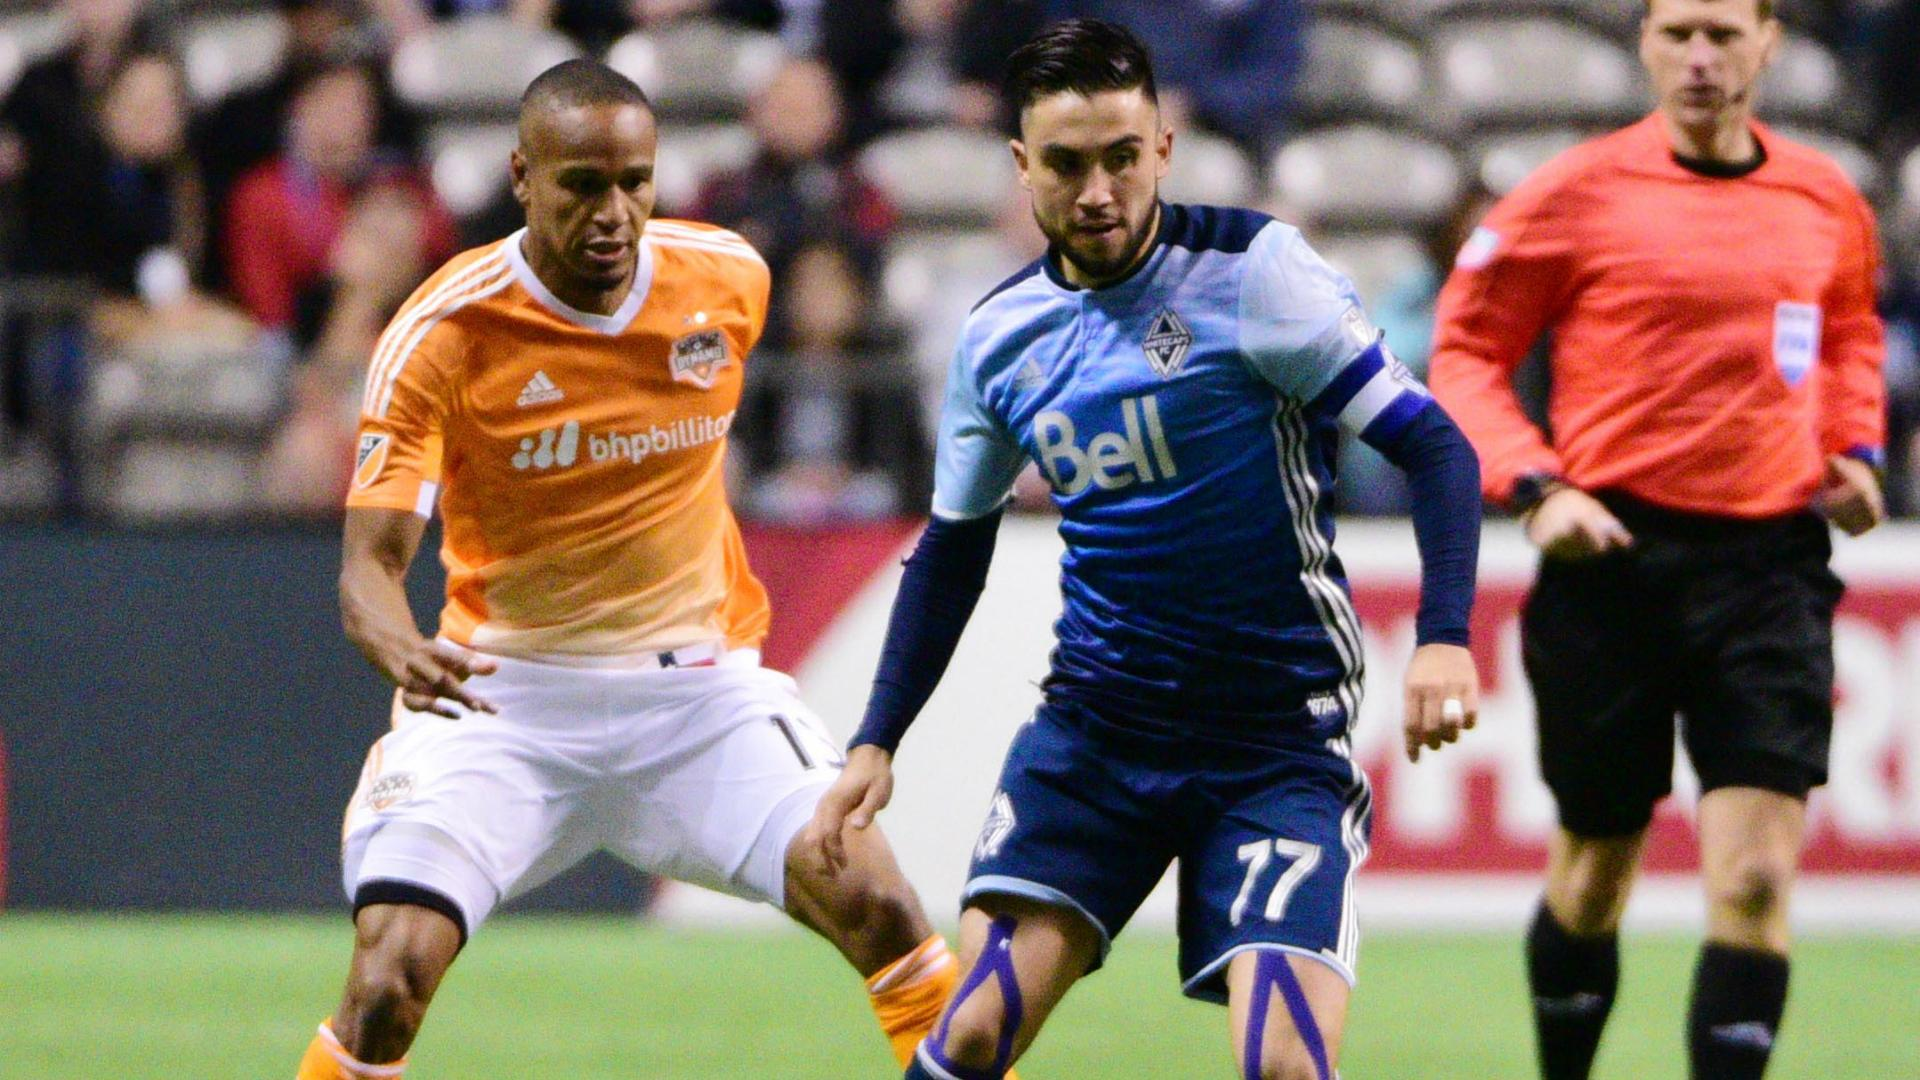 Whitecaps aim to be mistake free versus Dynamo